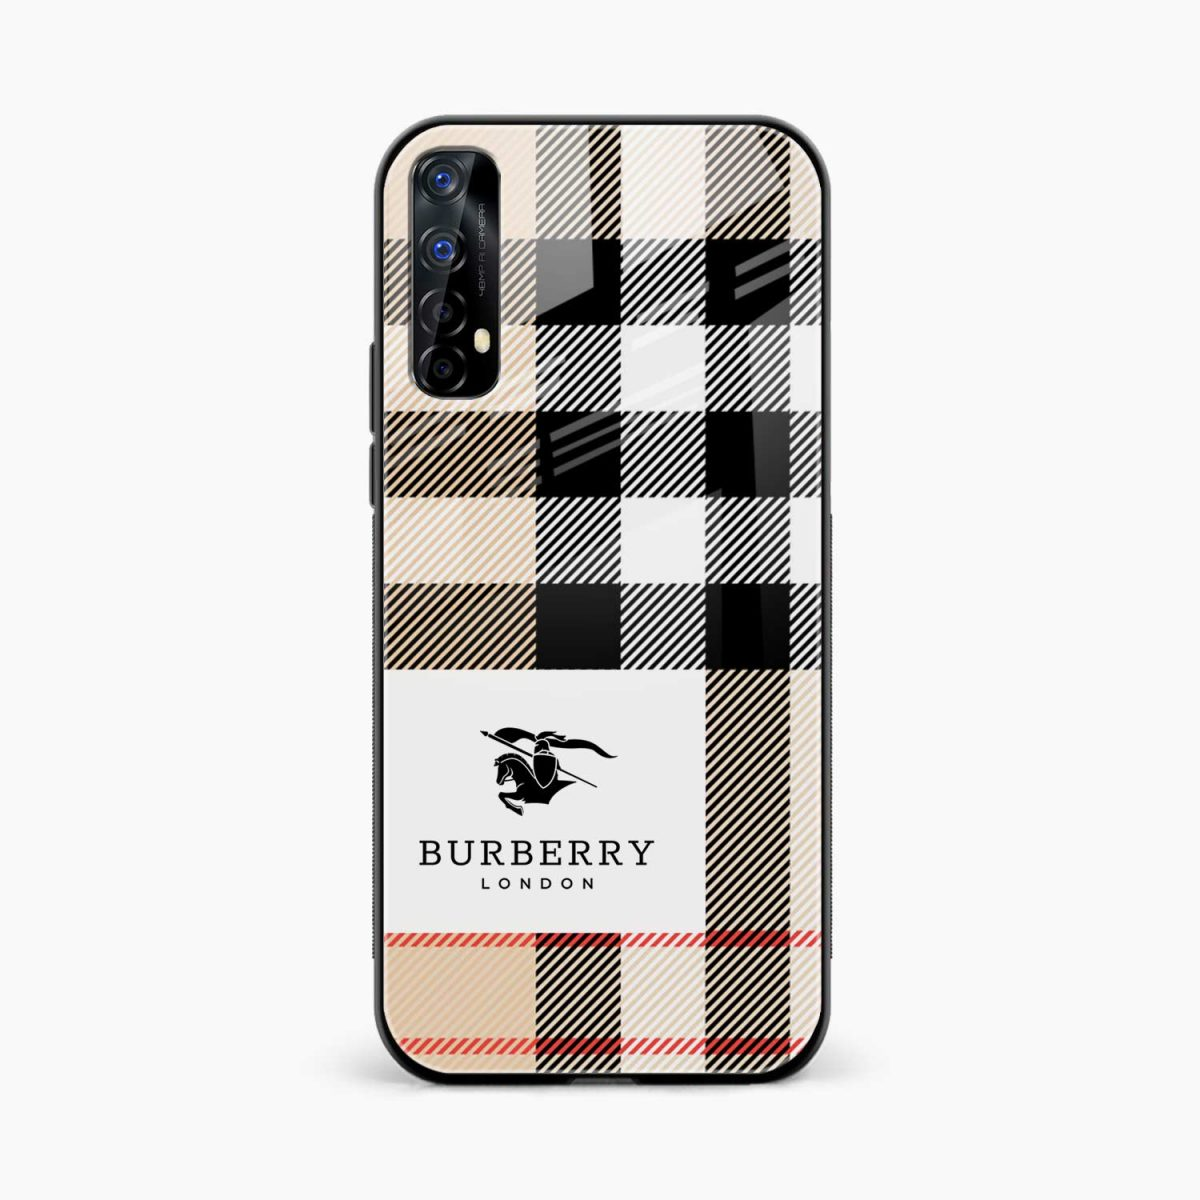 burberry cross lines pattern front view realme 7 back cover